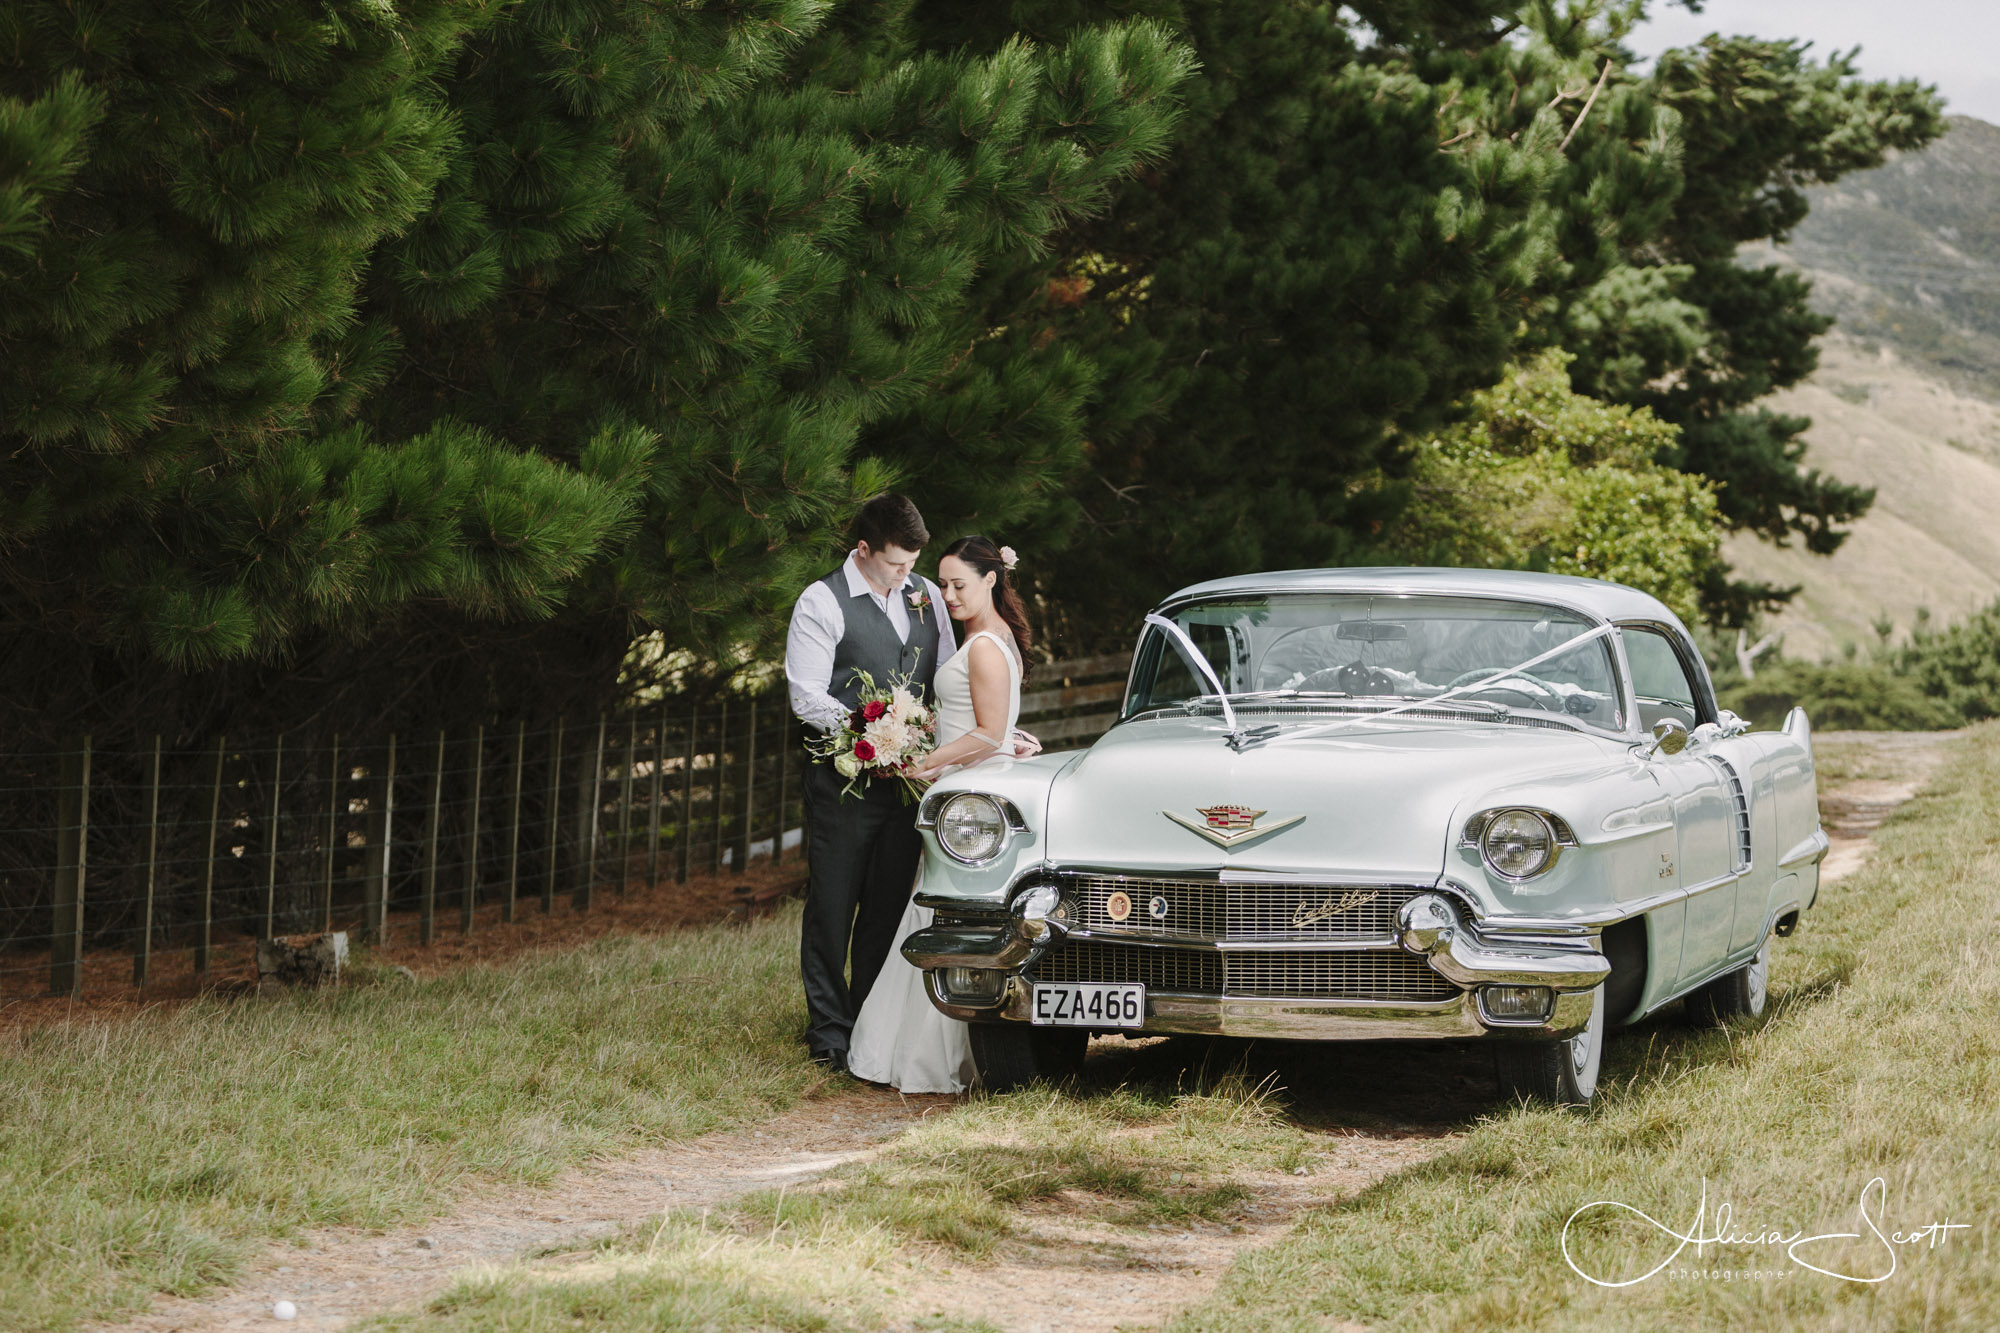 Images from the windy Ohariu Farm wedding of Zach and Kathryn taken by Alicia Scott Wellington Photographer